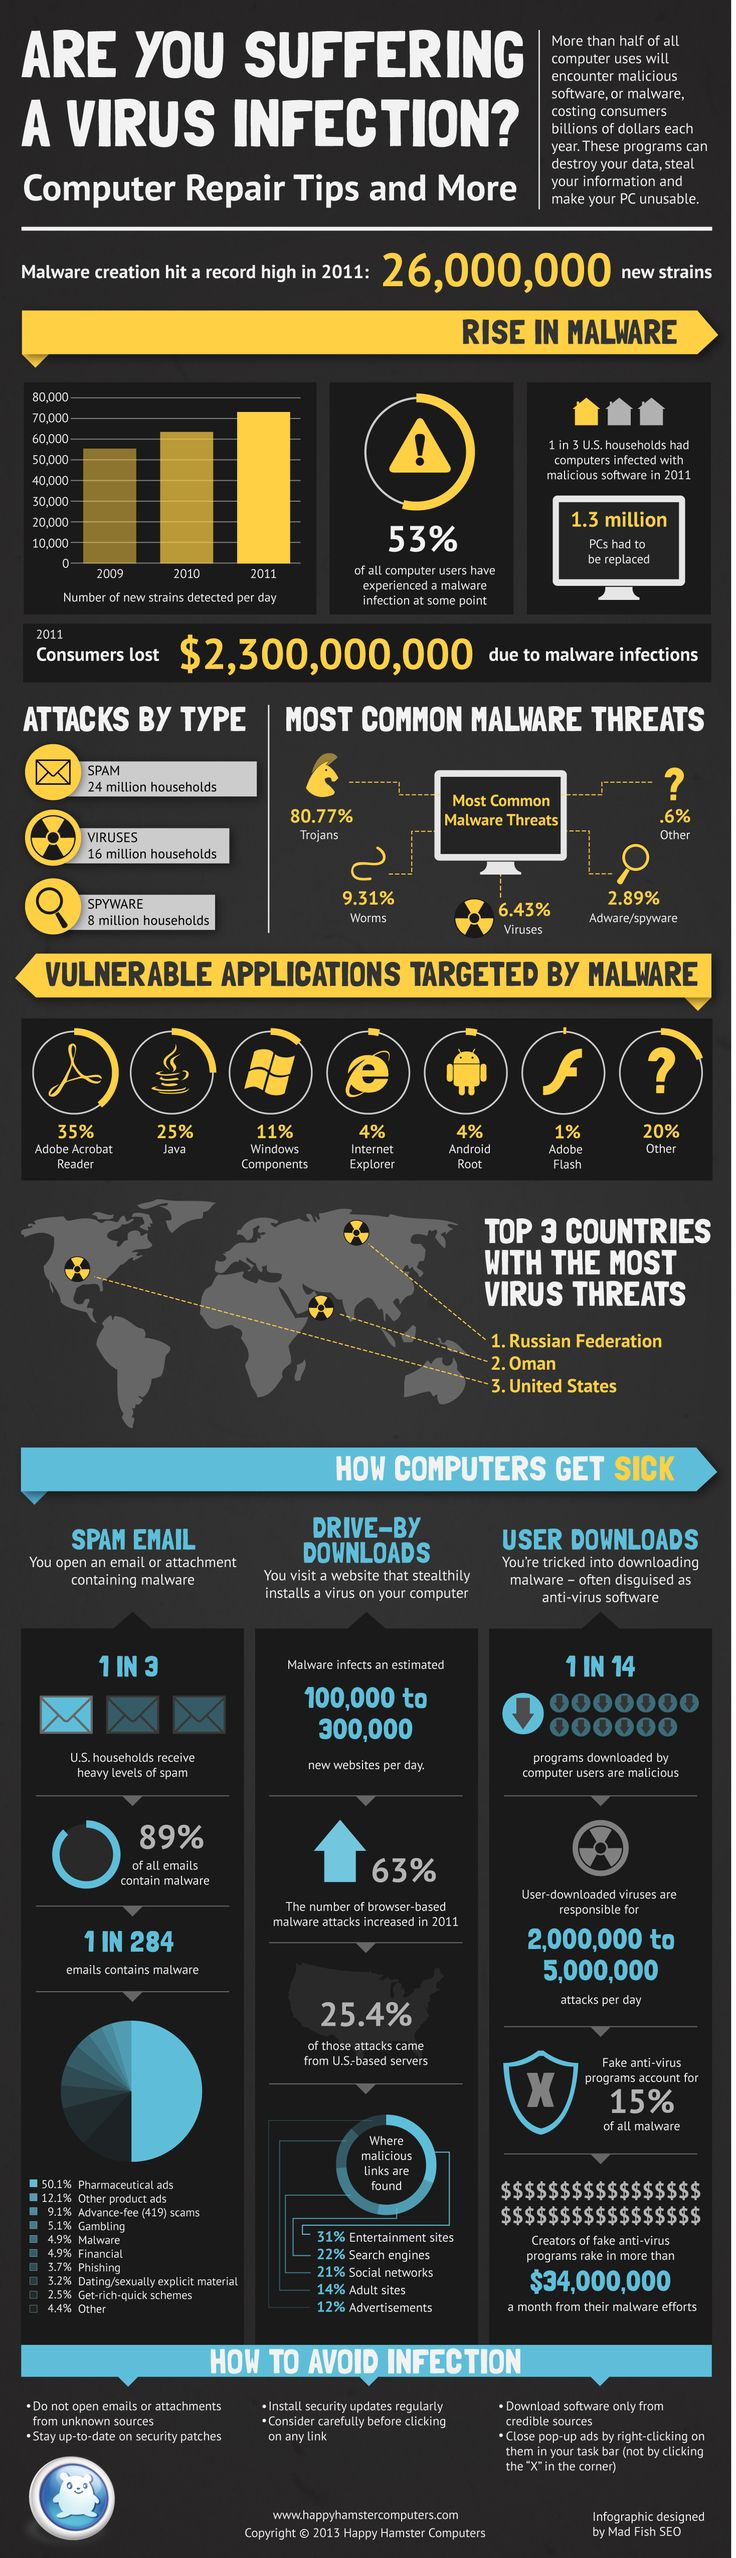 Computer viruses are the nightmares of a technological world. They stealthily spread from machine to machine, wreaking havoc and costing the world bil